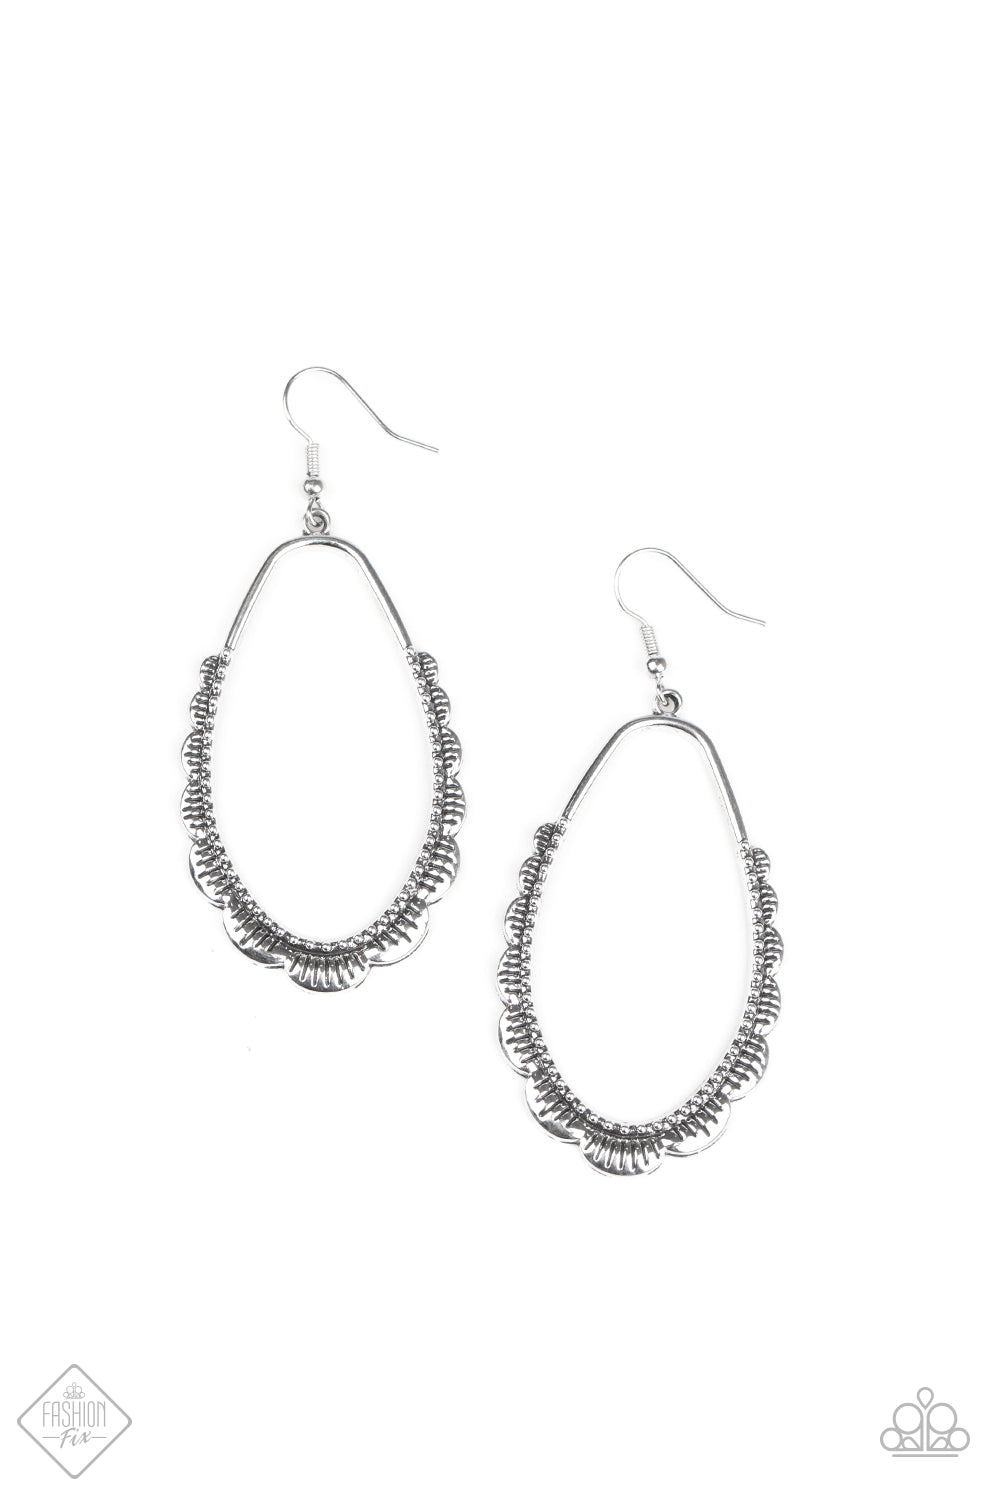 Paparazzi RUFFLE Around The Edges Silver Fishhook Earrings - Fashion Fix Sunset Sightings August 2020